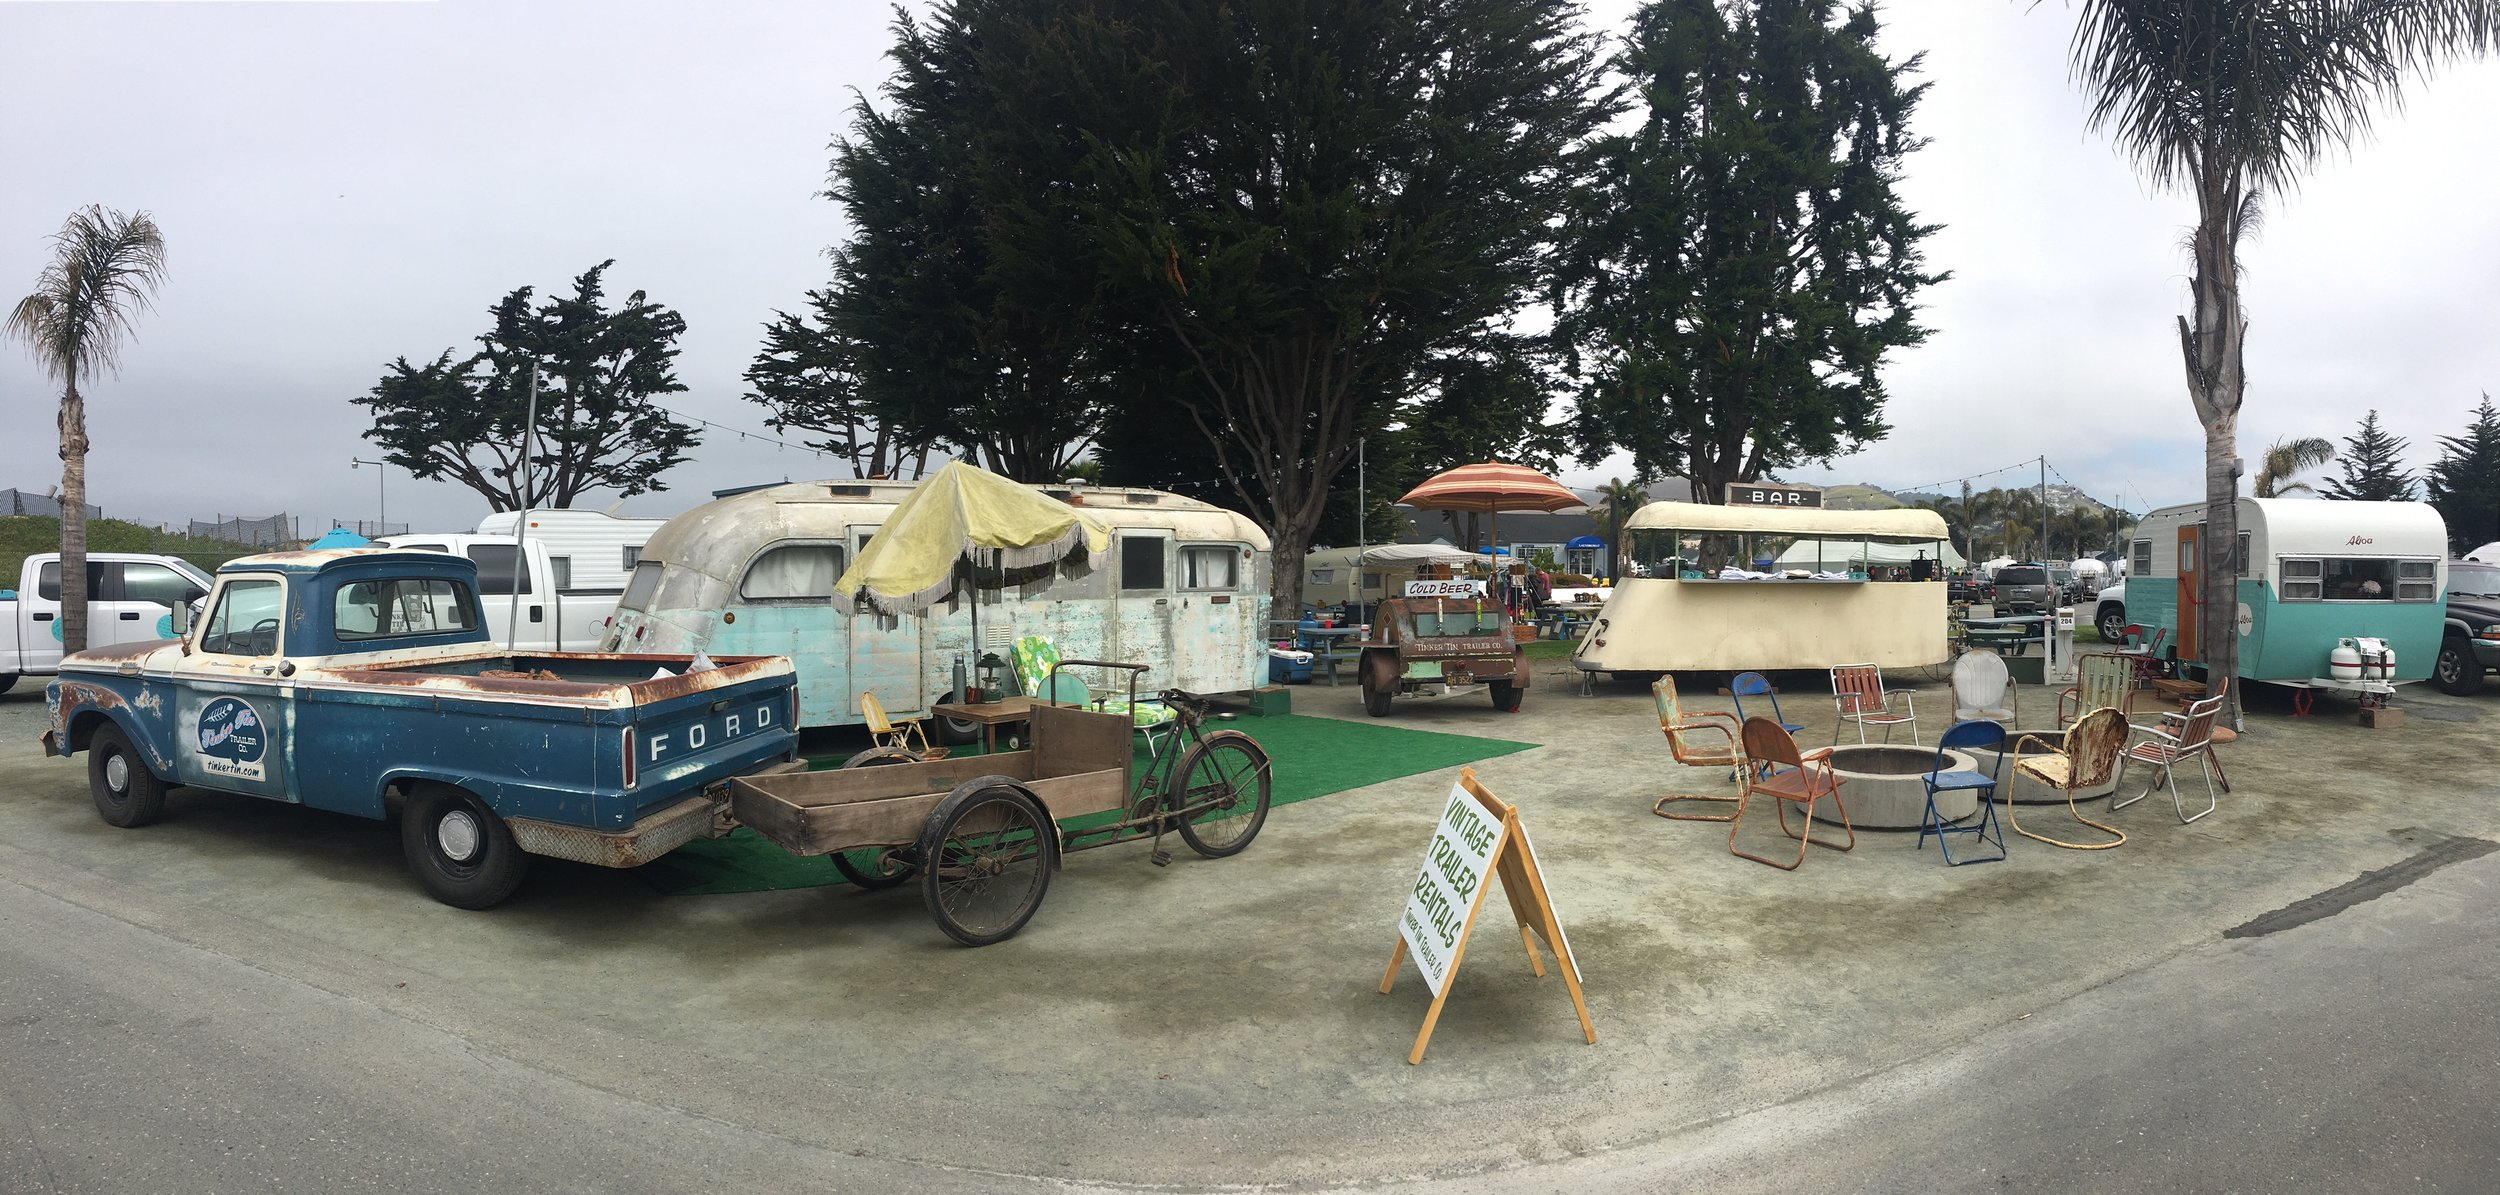 A shot of our entire 2018 Pismo Vintage Trailer Rally setup! Our vintage trailer lineup this year (in order) included our 1964 Ford truck, 1940's Balkfiet, 1948 Westcraft trailer, 1948 Barrel trailer, 1937 Masonite pop-up trailer and our 1954 Aljoa trailer.